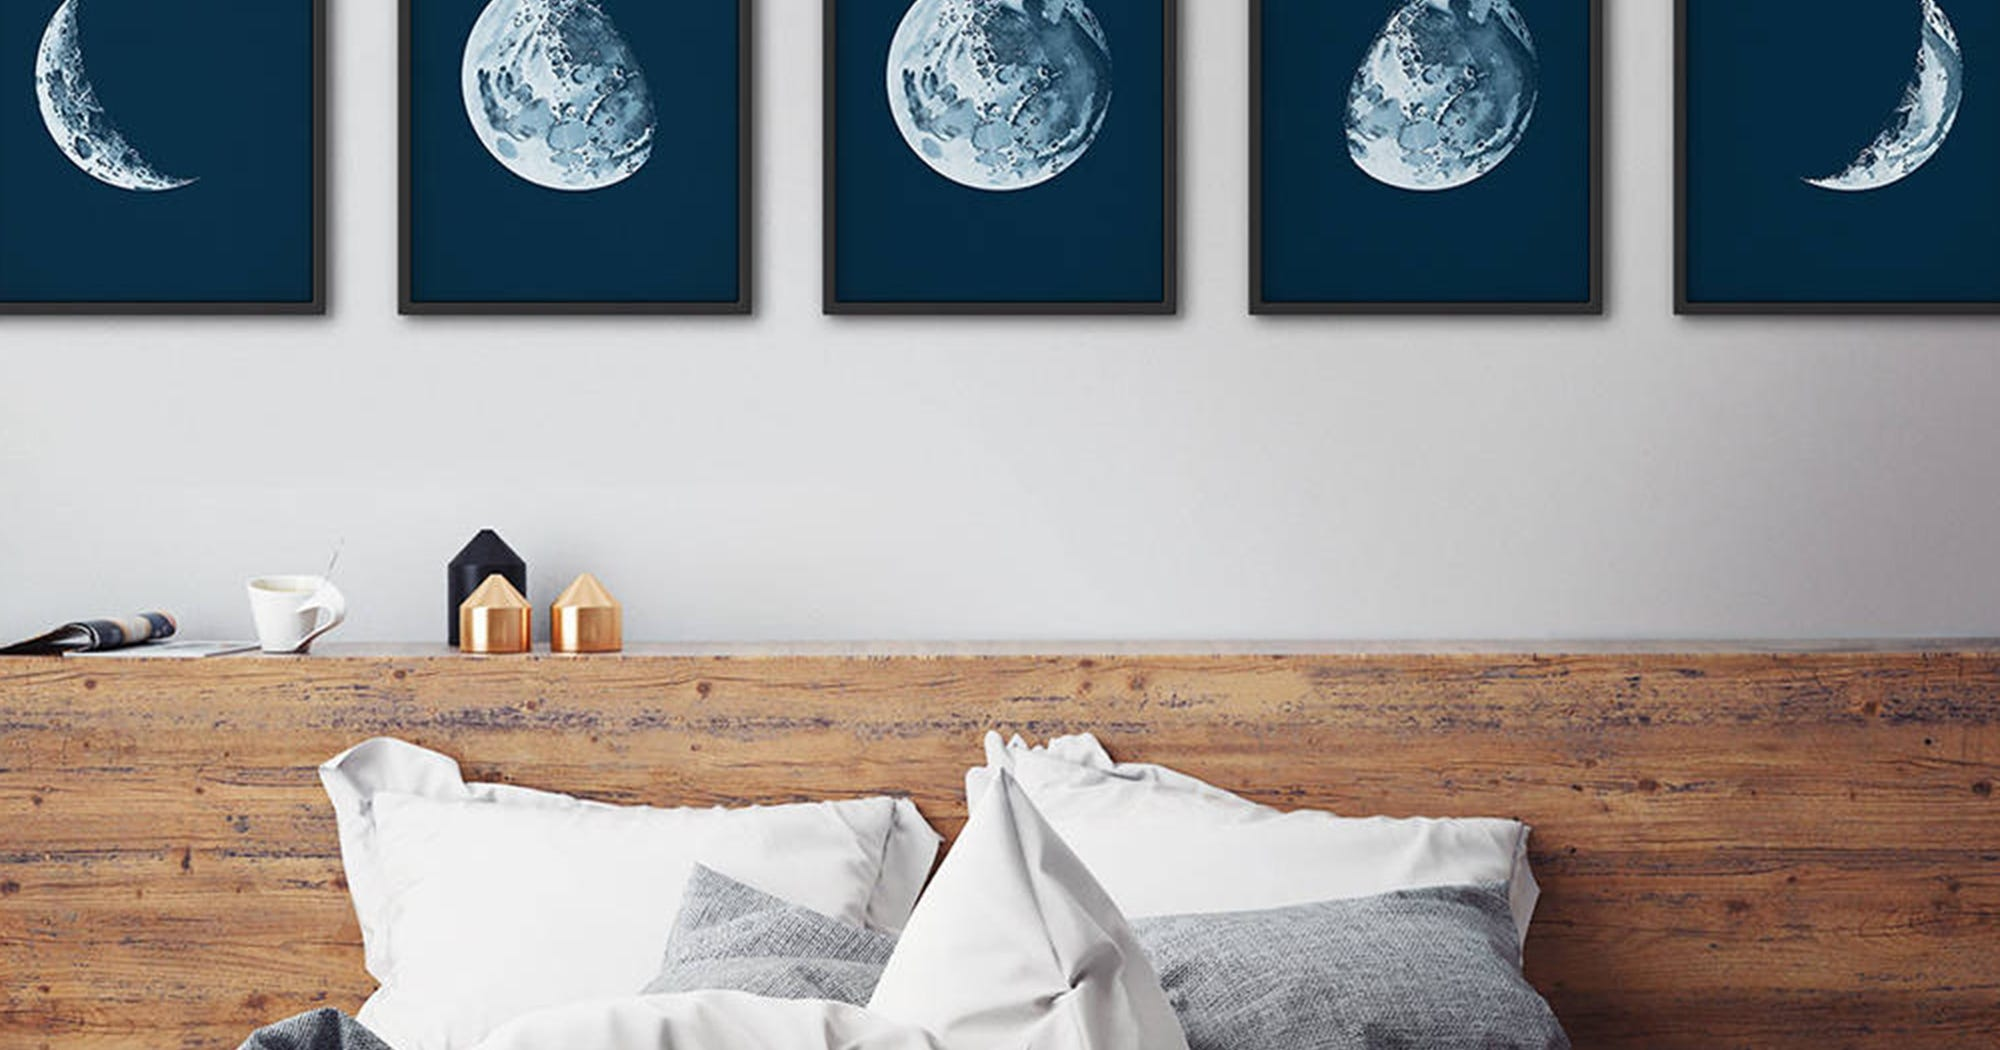 20 Fancy-Looking Home Buys We Can't Believe Are From Etsy